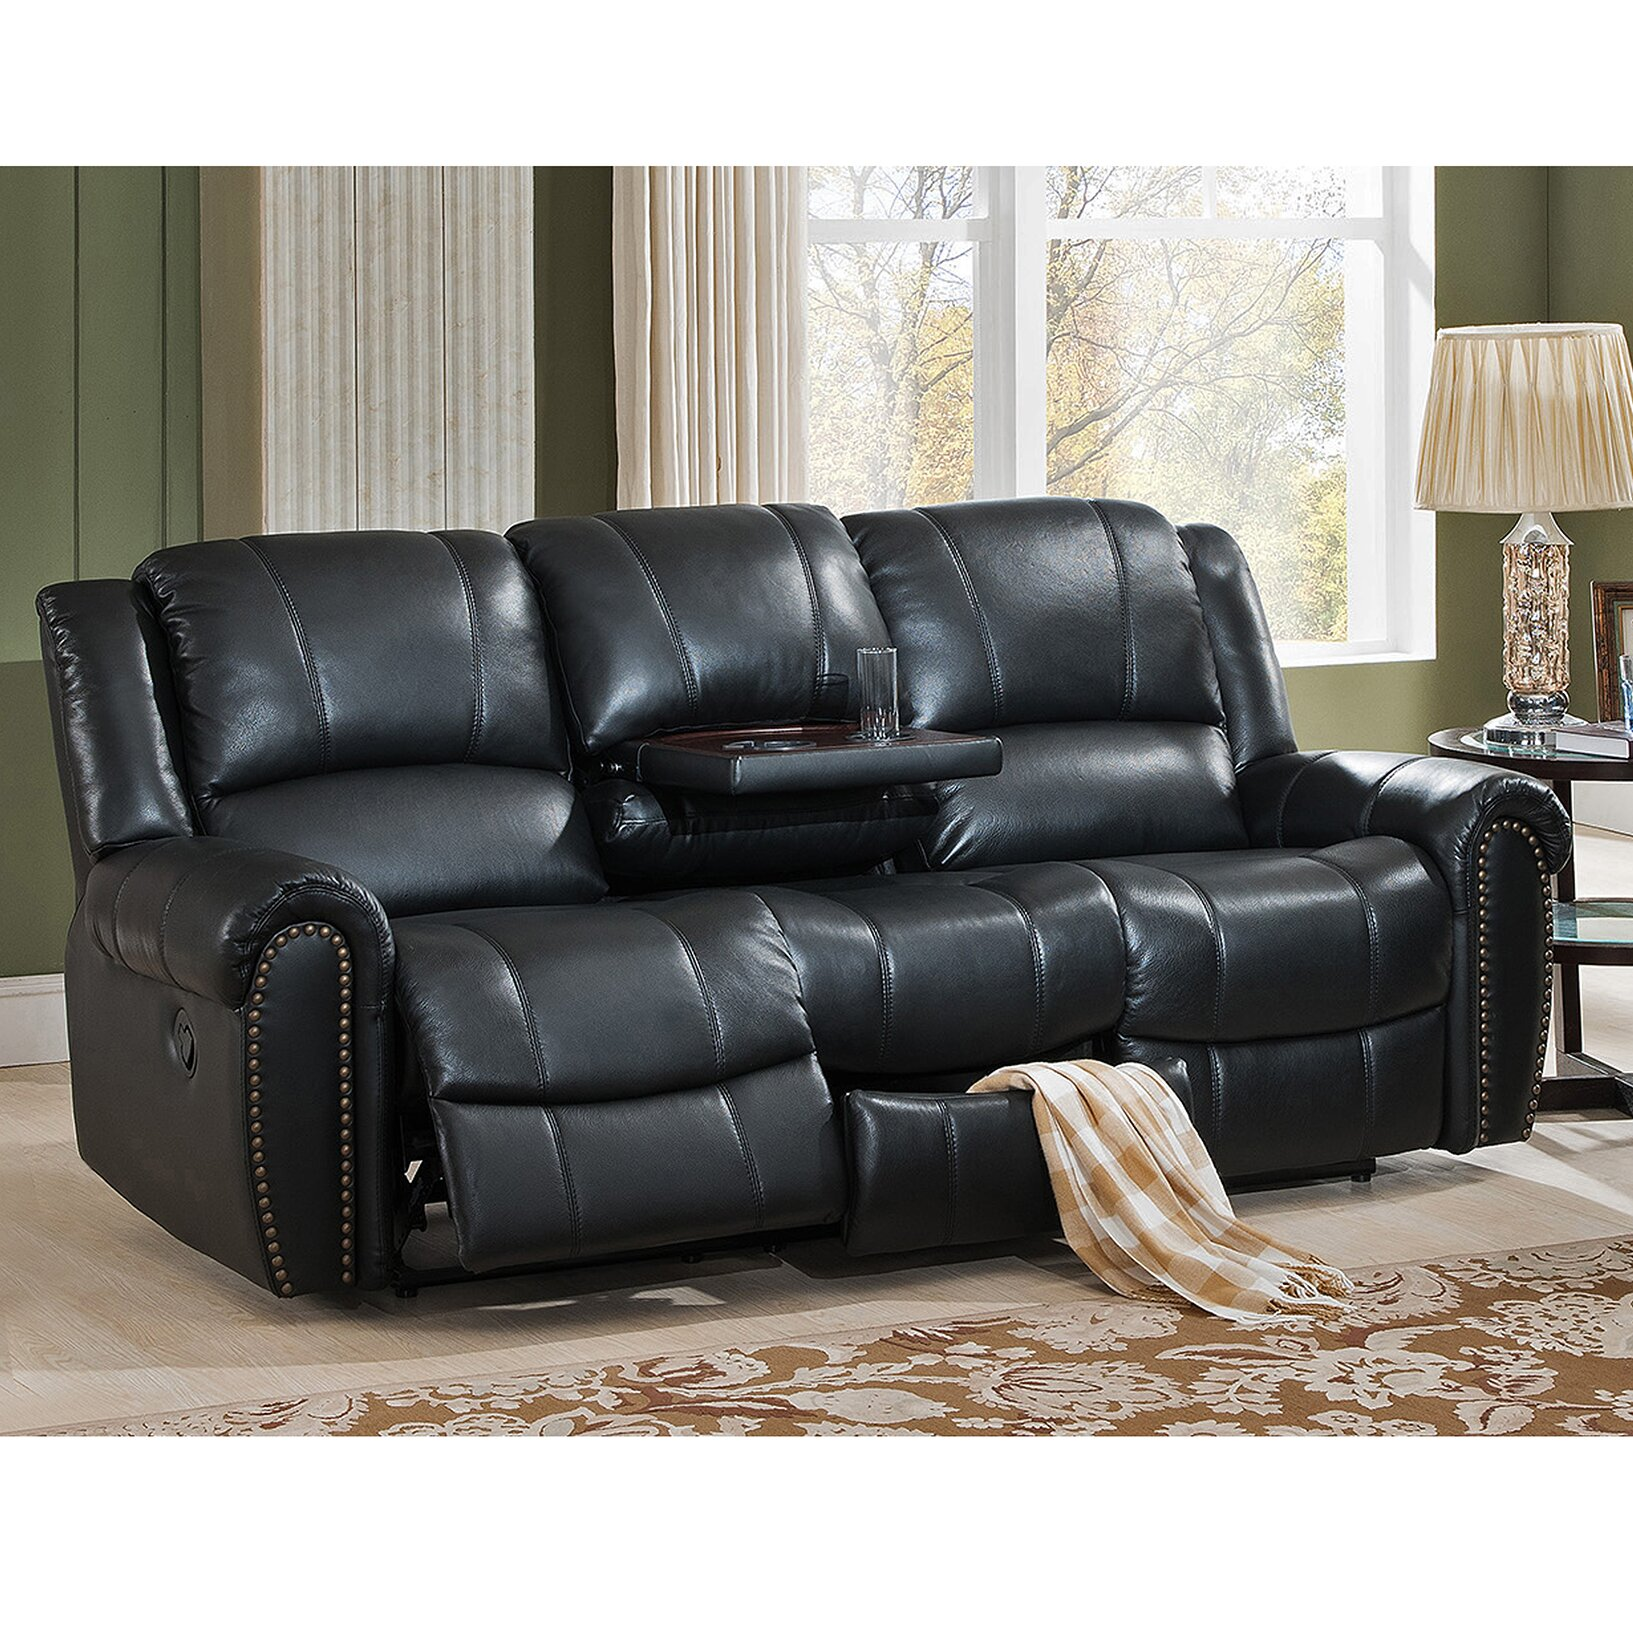 Amax houston 3 piece leather recliner living room set for 3 piece living room set